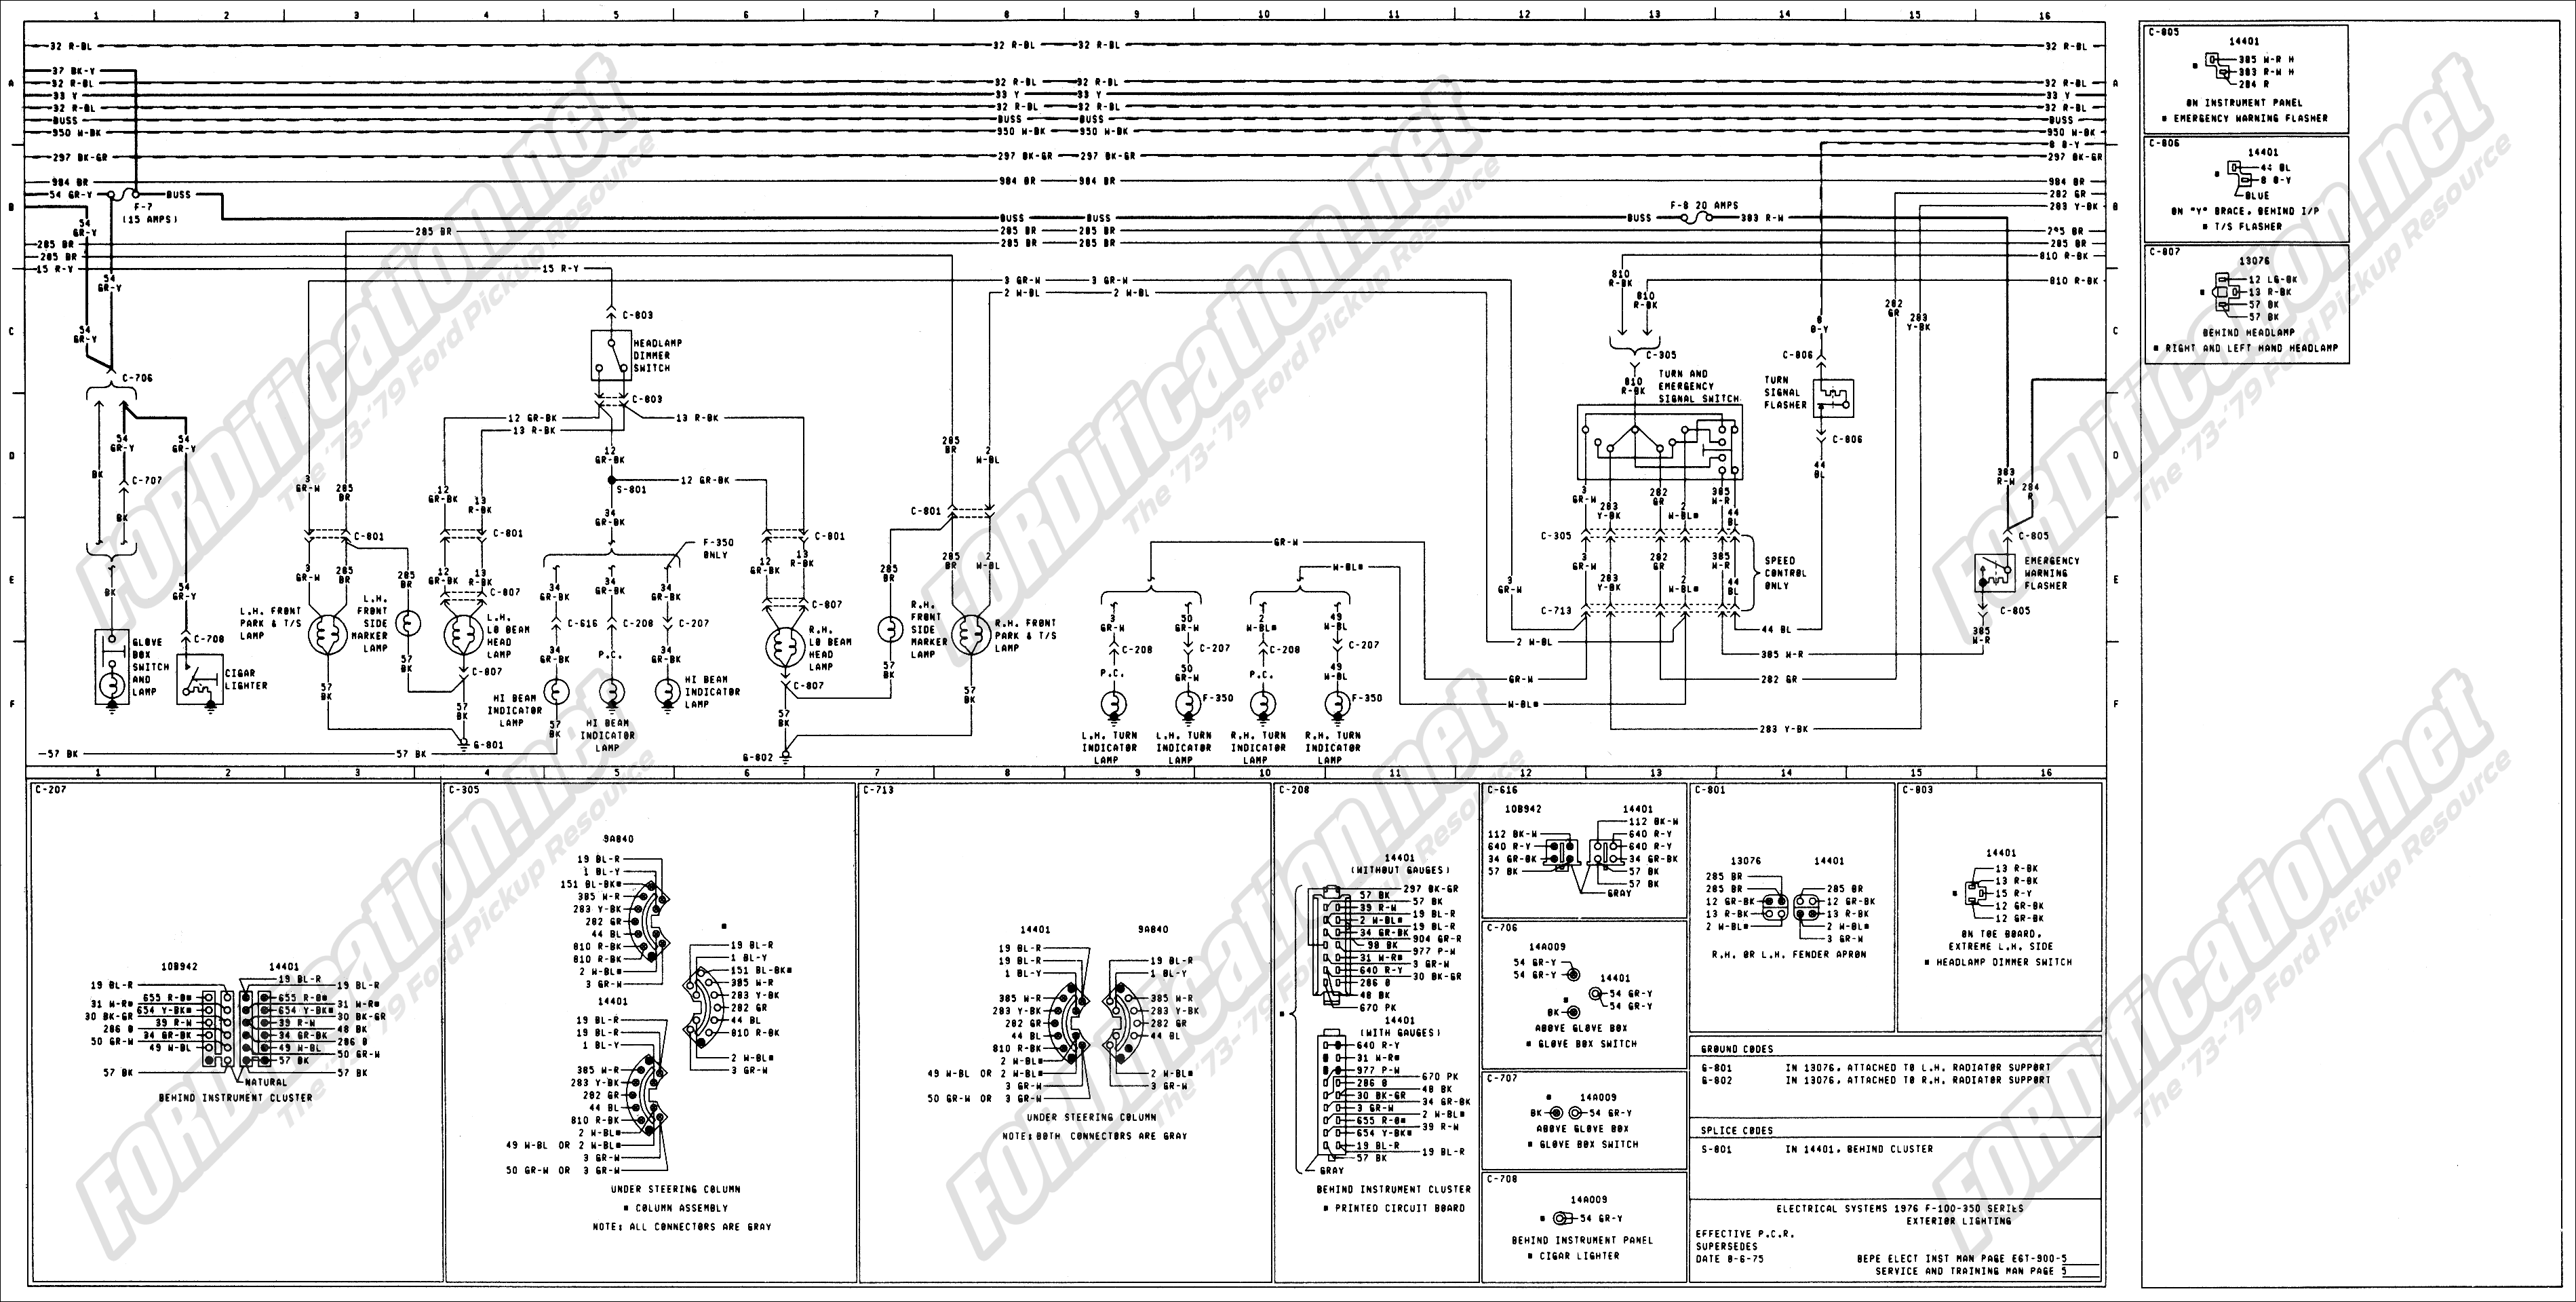 1976 F250 Ac Wiring Diagram Quick Start Guide Of Trailer Printable 1973 1979 Ford Truck Diagrams Schematics Fordification Net Rh Dash 1977 F 250